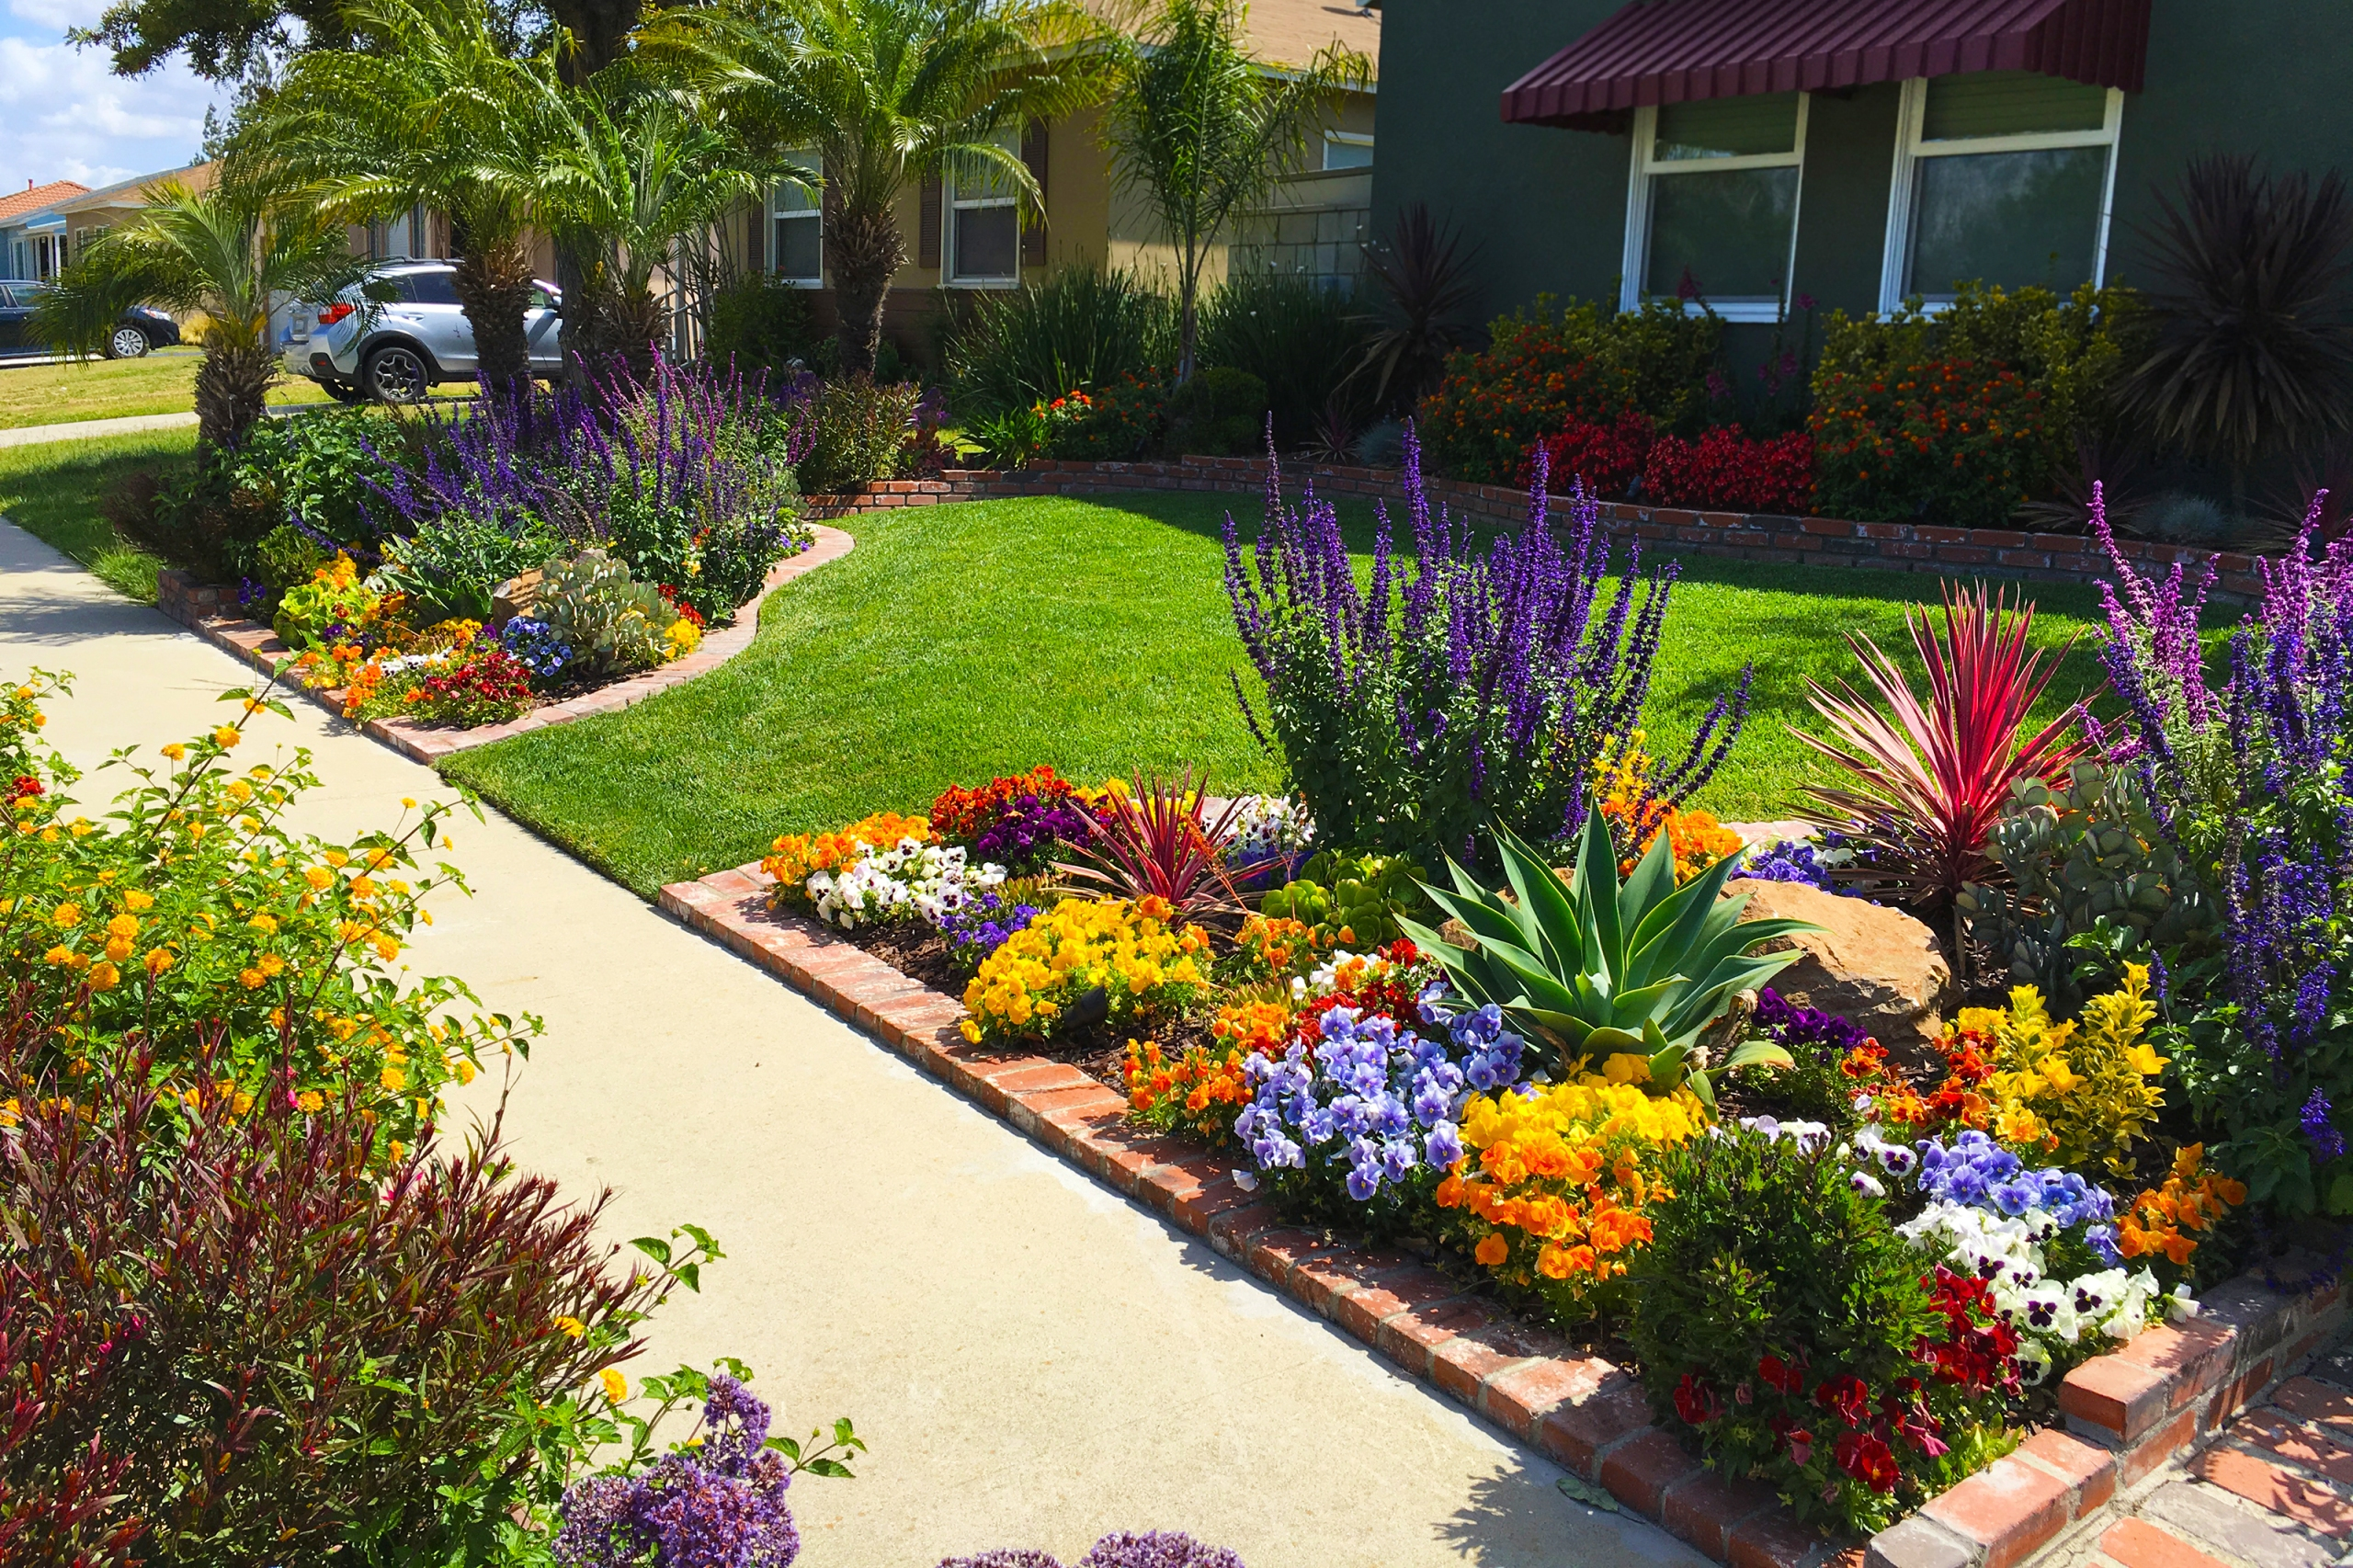 Front Yard Landscaping Ideas for Curb Appeal | HouseLogic on Low Maintenance:cyizg0Gje0G= Backyard Design  id=27068